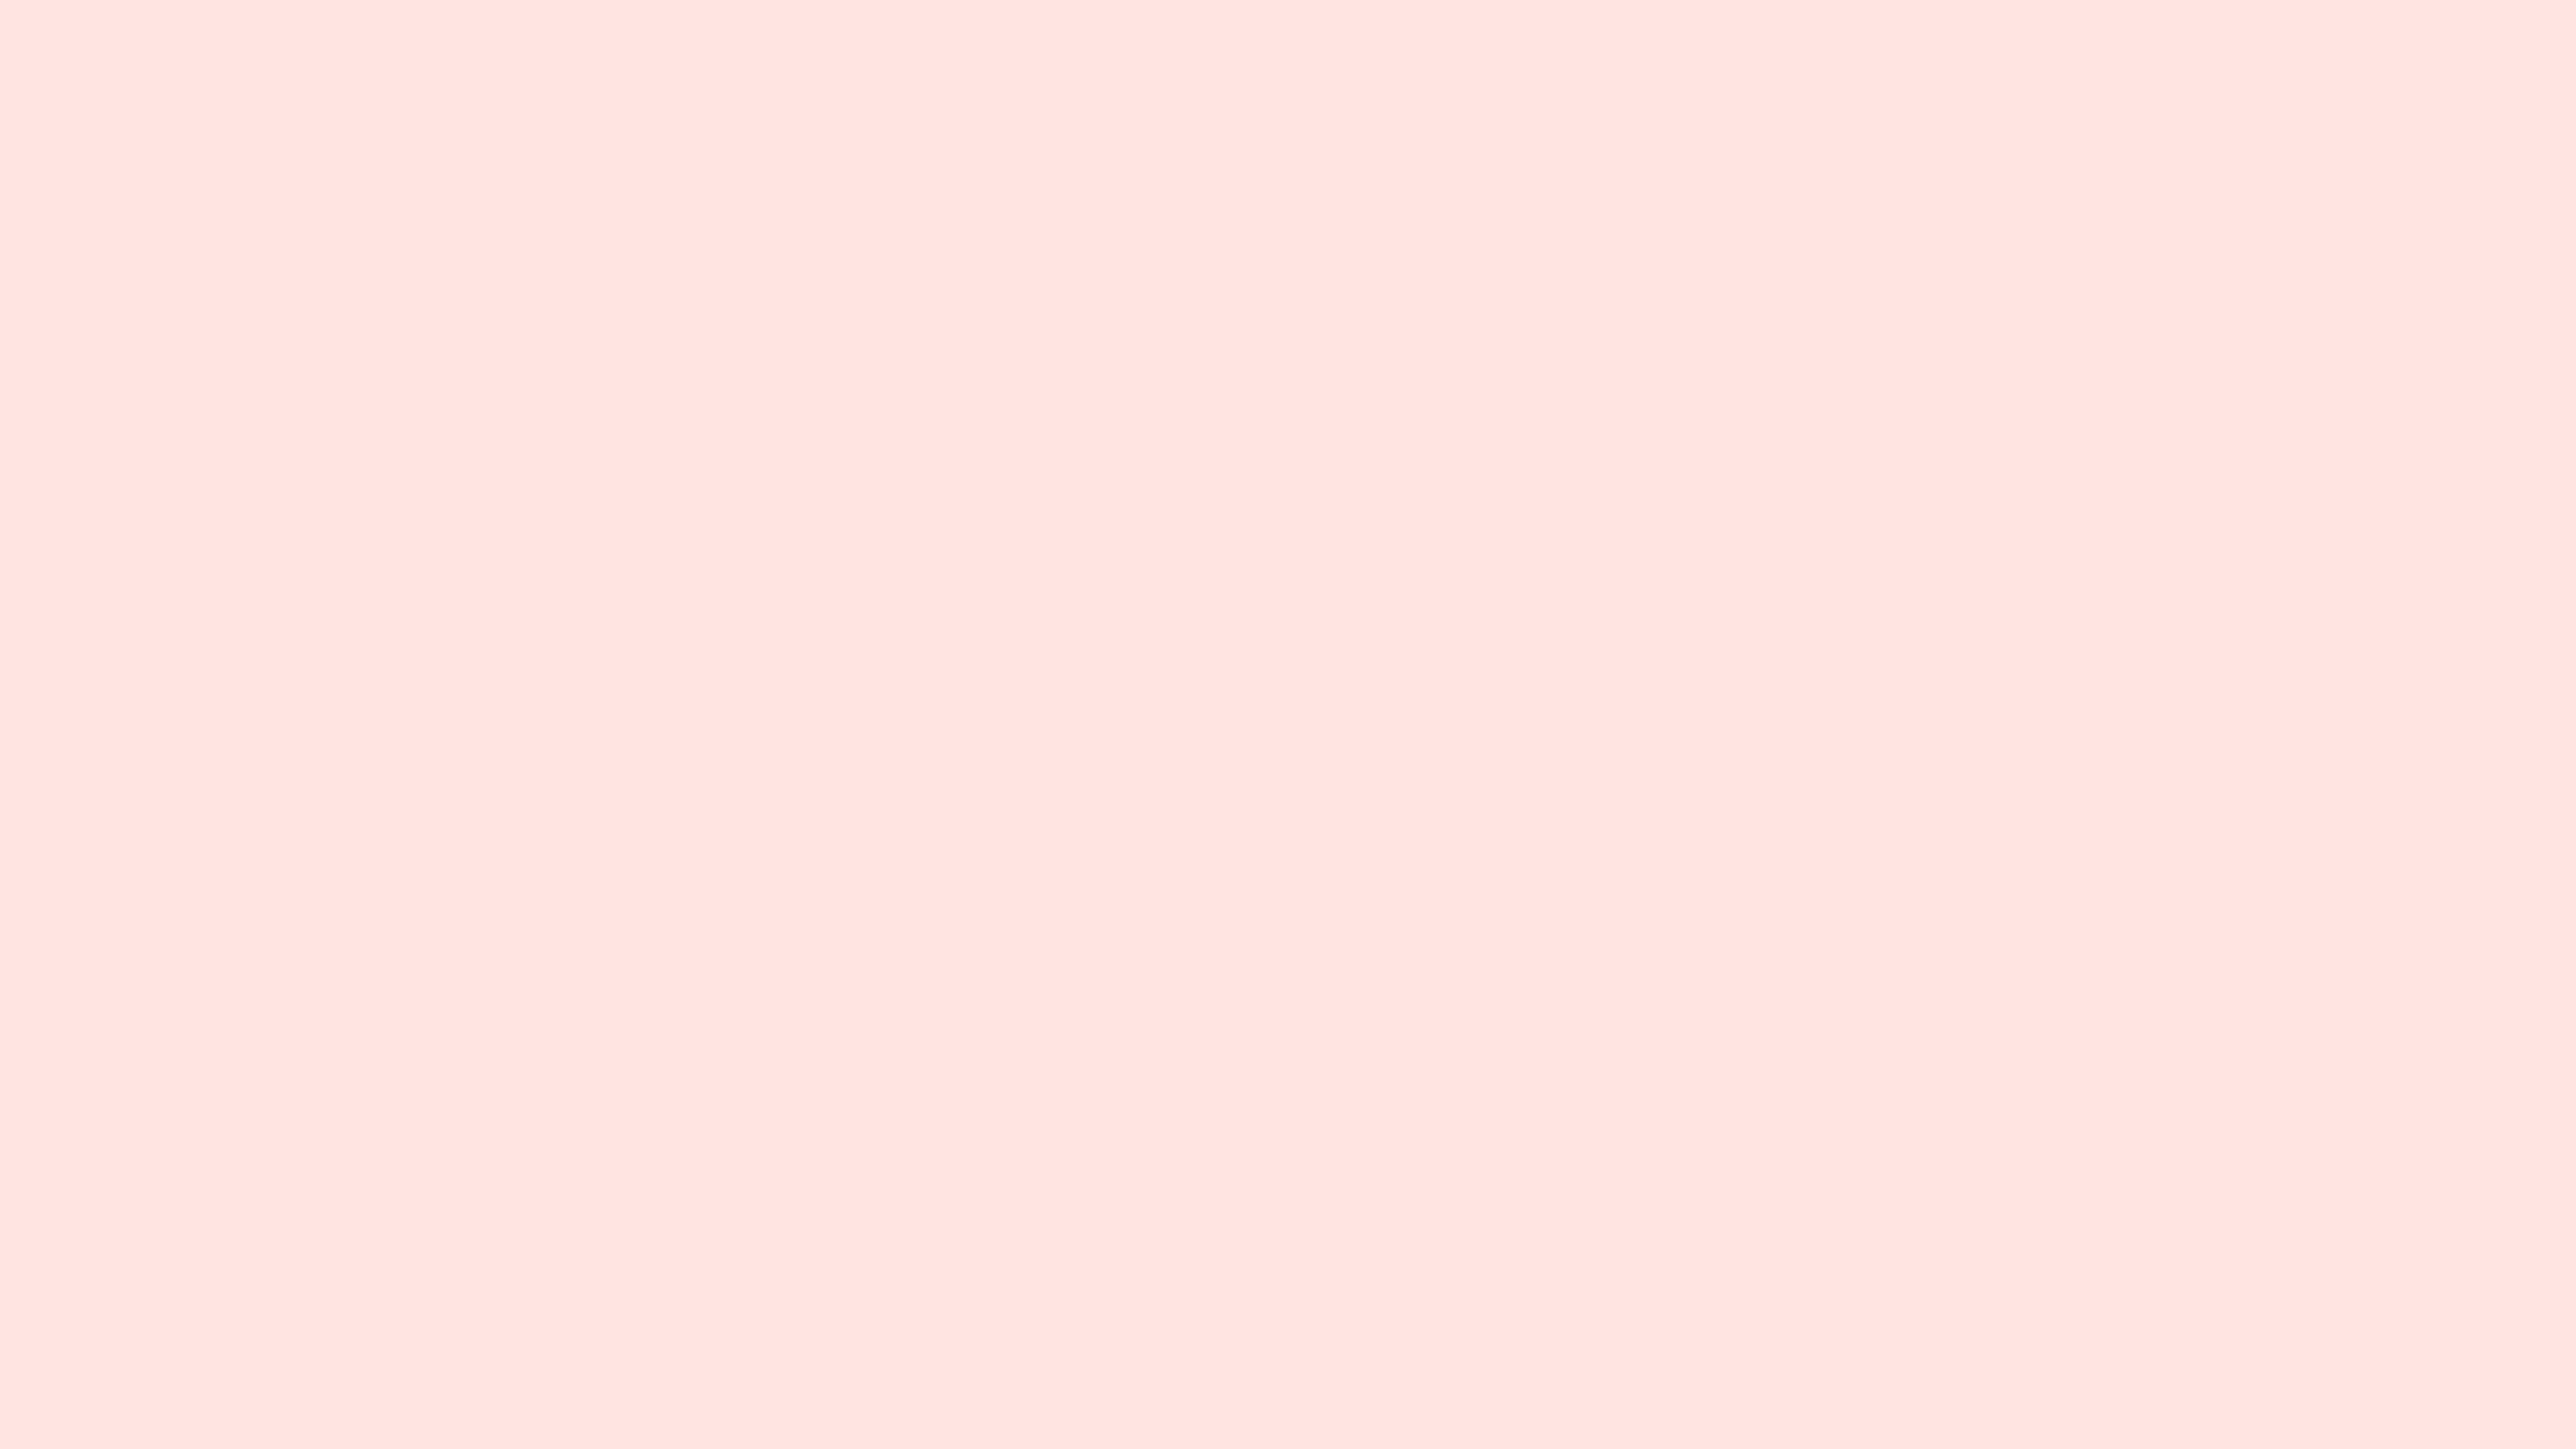 3840x2160 Misty Rose Solid Color Background